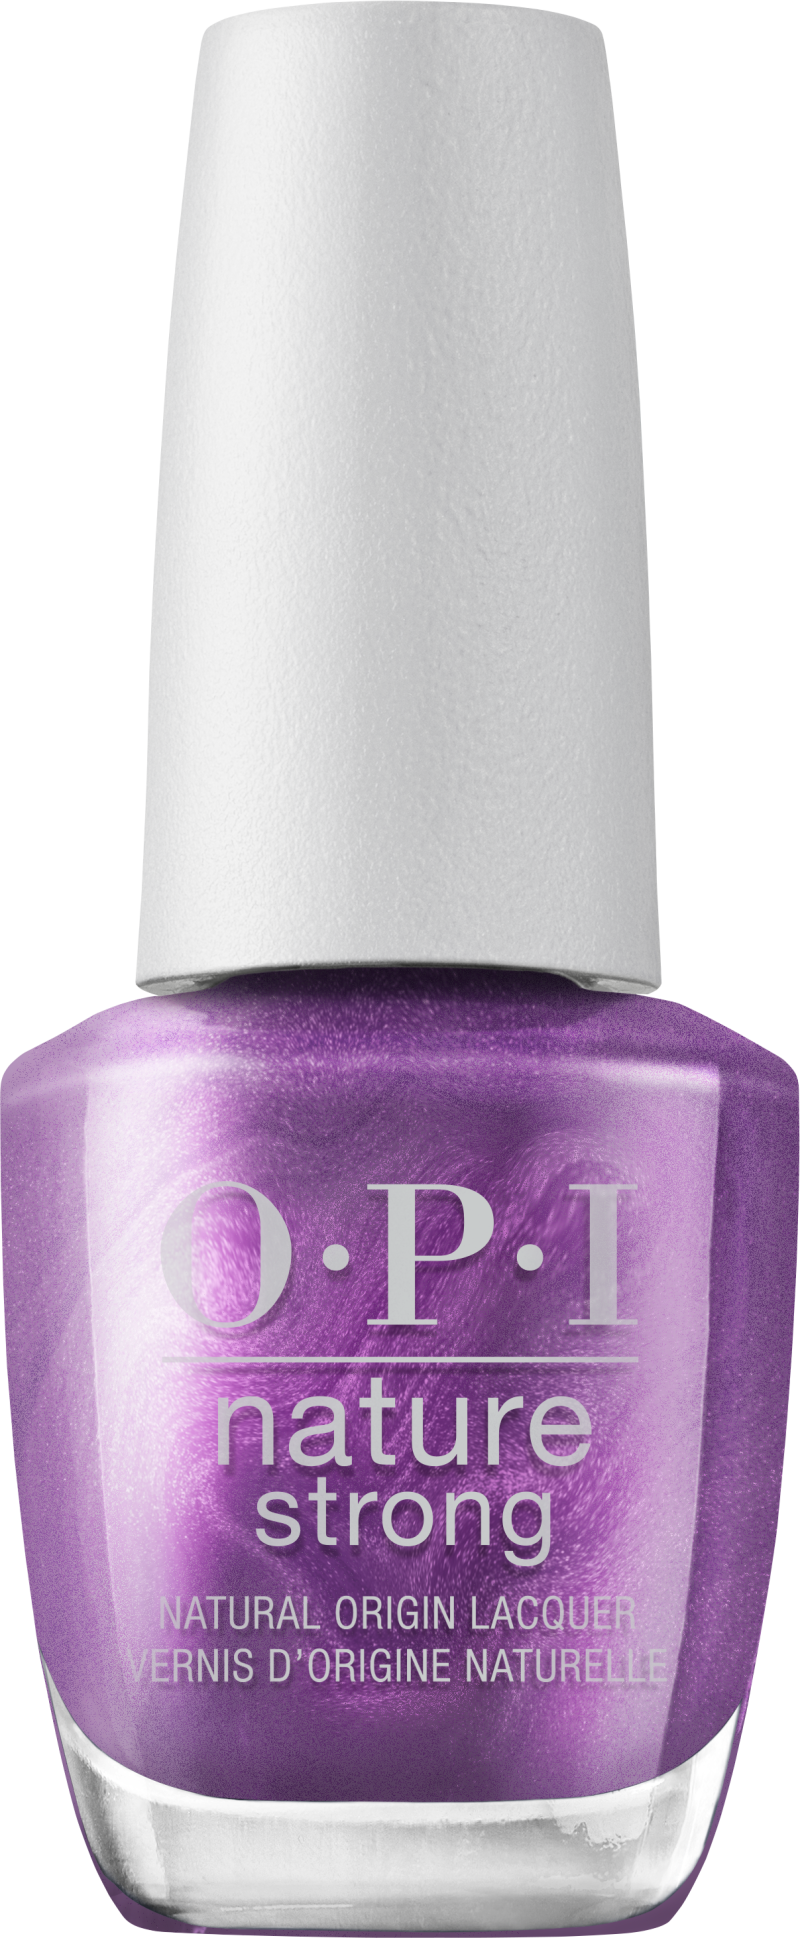 OPI NATURE STRONG Achieve Grapeness